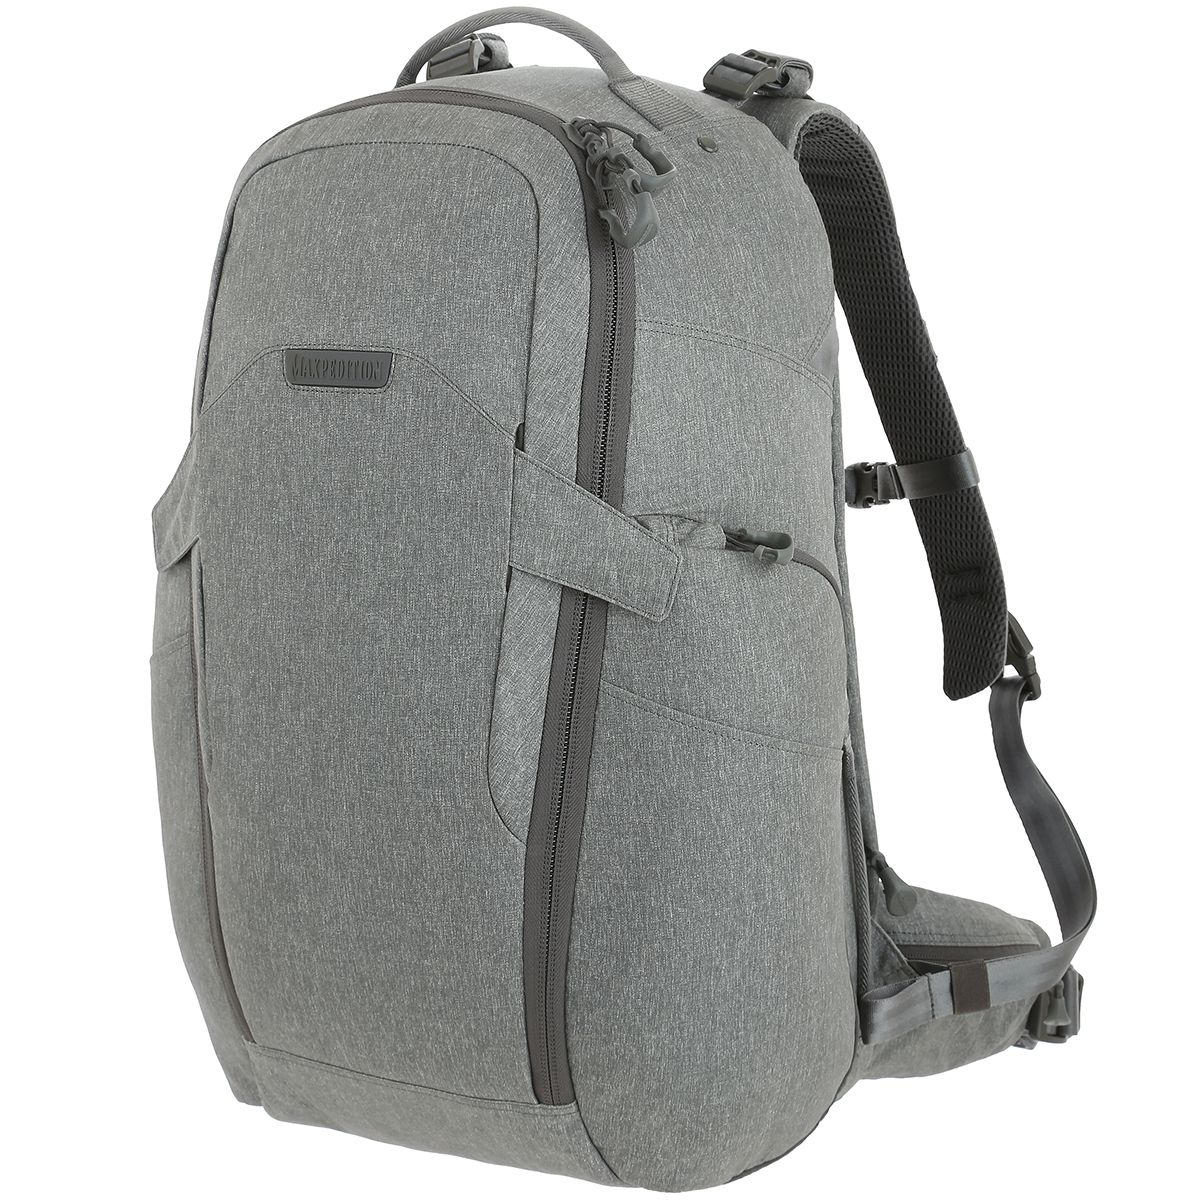 Maxpedition NTTPK35AS Entity 35 CCW-Enabled Internal Frame Backpack 35L, Ash